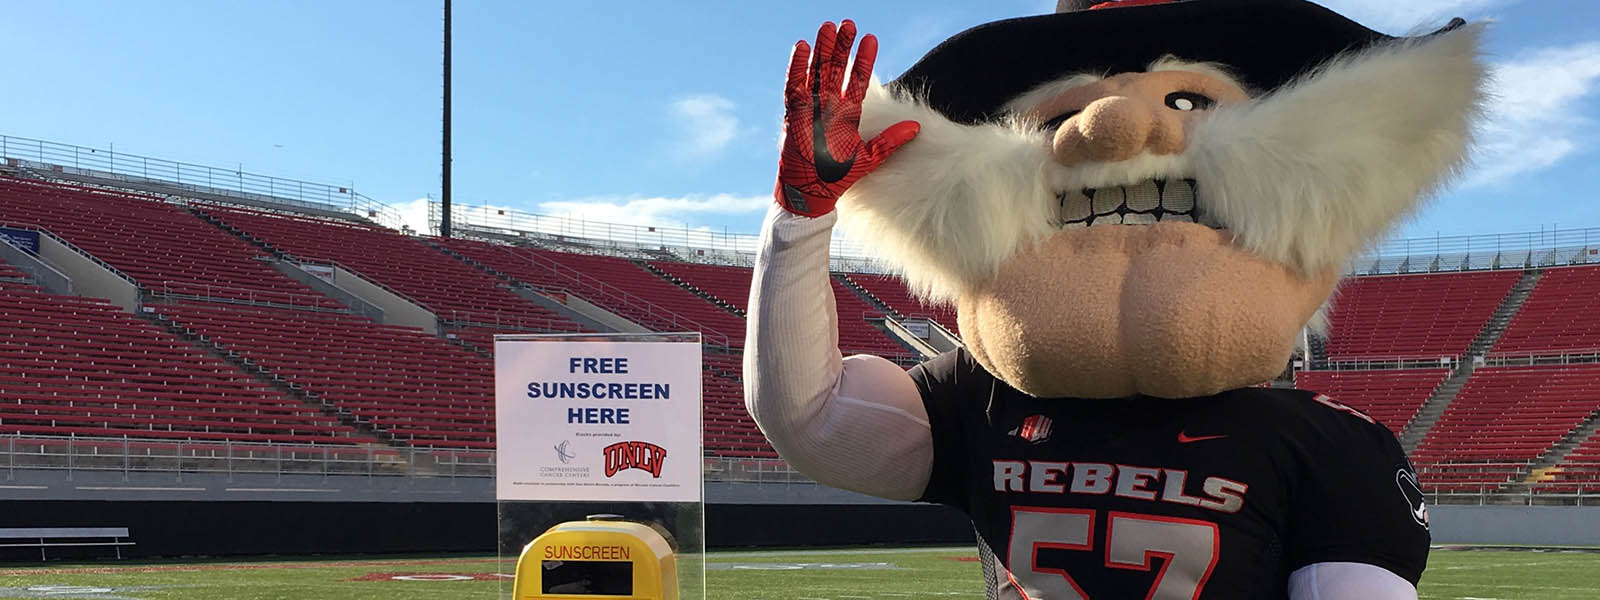 Comprehensive and UNLV Partner to Provide Free Sunscreen to Fans